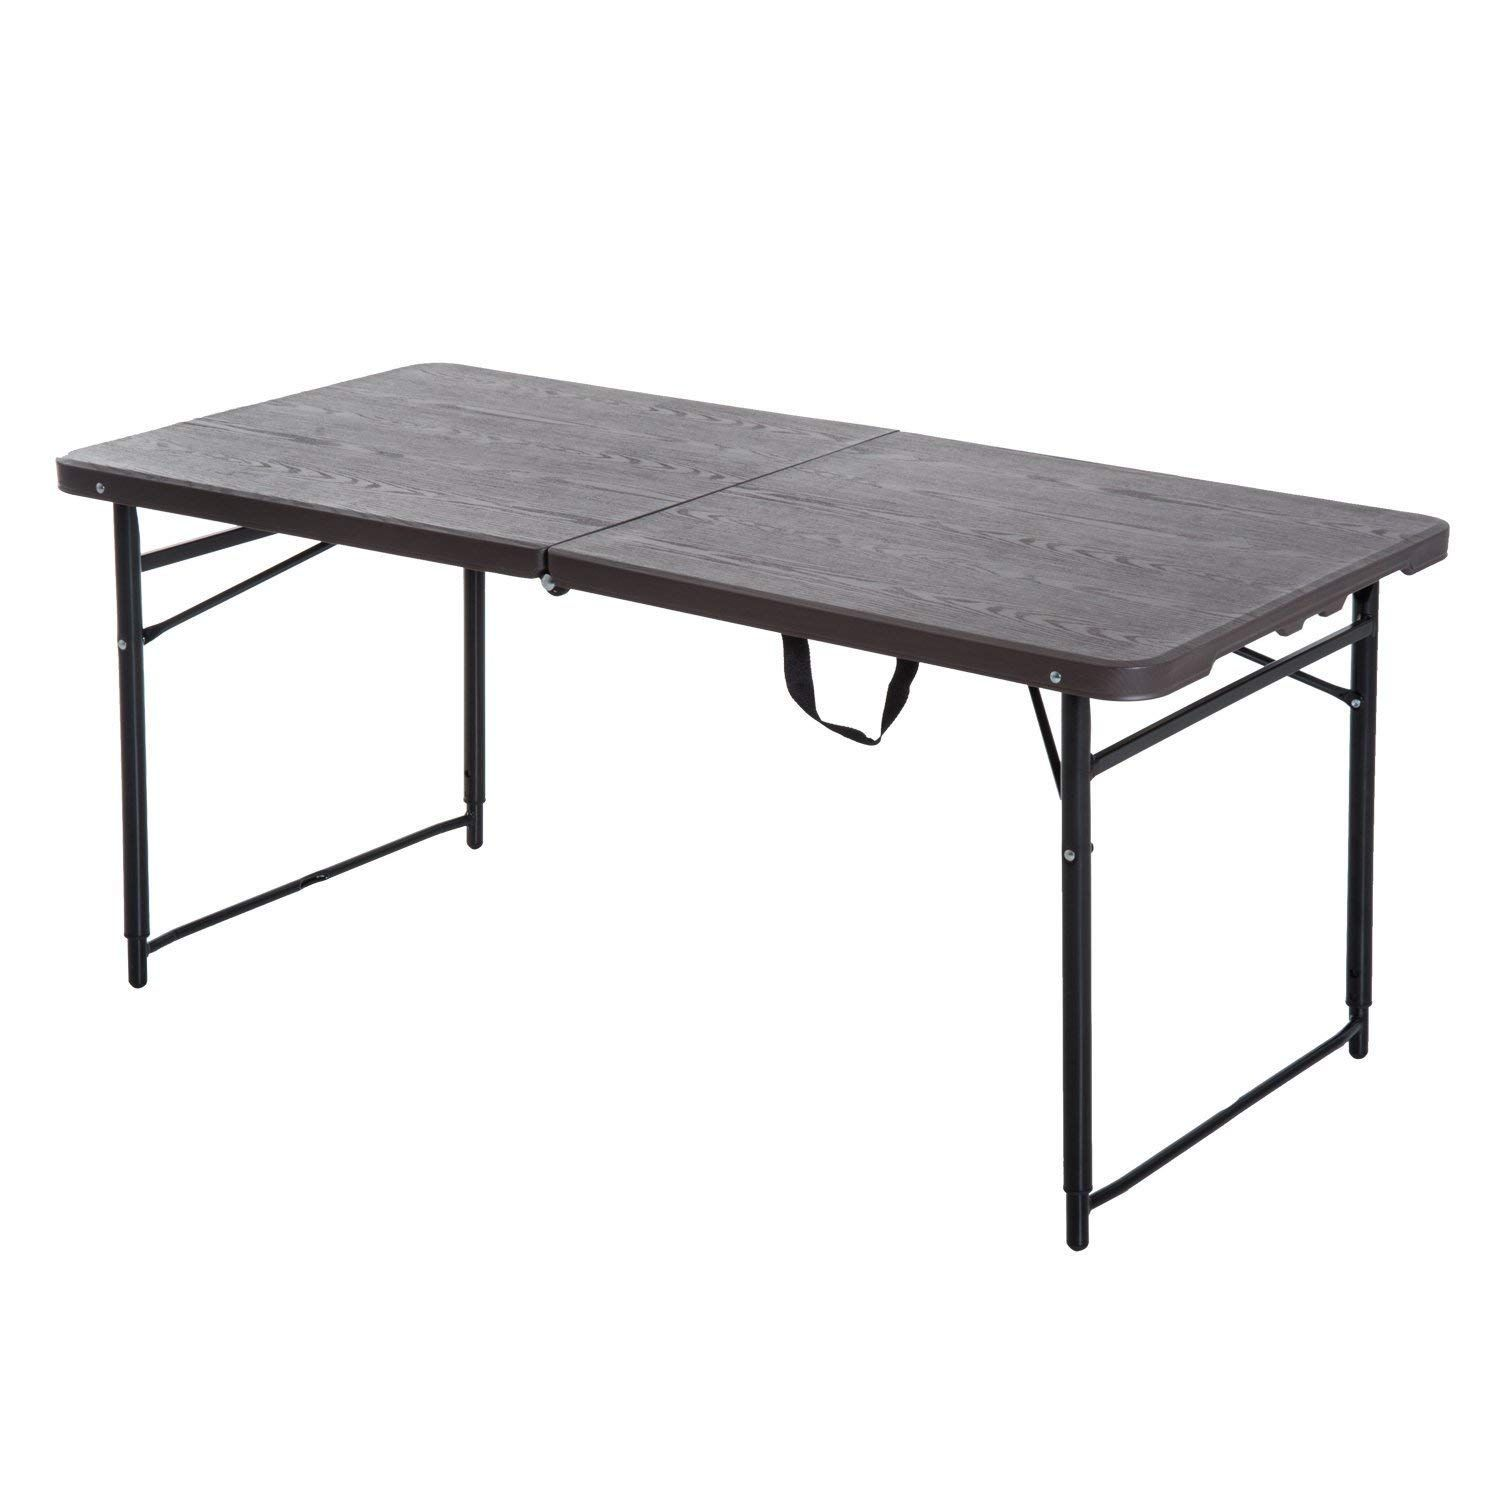 Outsunny 1 2 M Exterieur Table De Camping Pliante A Hauteur Reglable De Jardin Jardin Bbq Party Tab Table De Camping Pliante Table De Pique Nique Table Camping